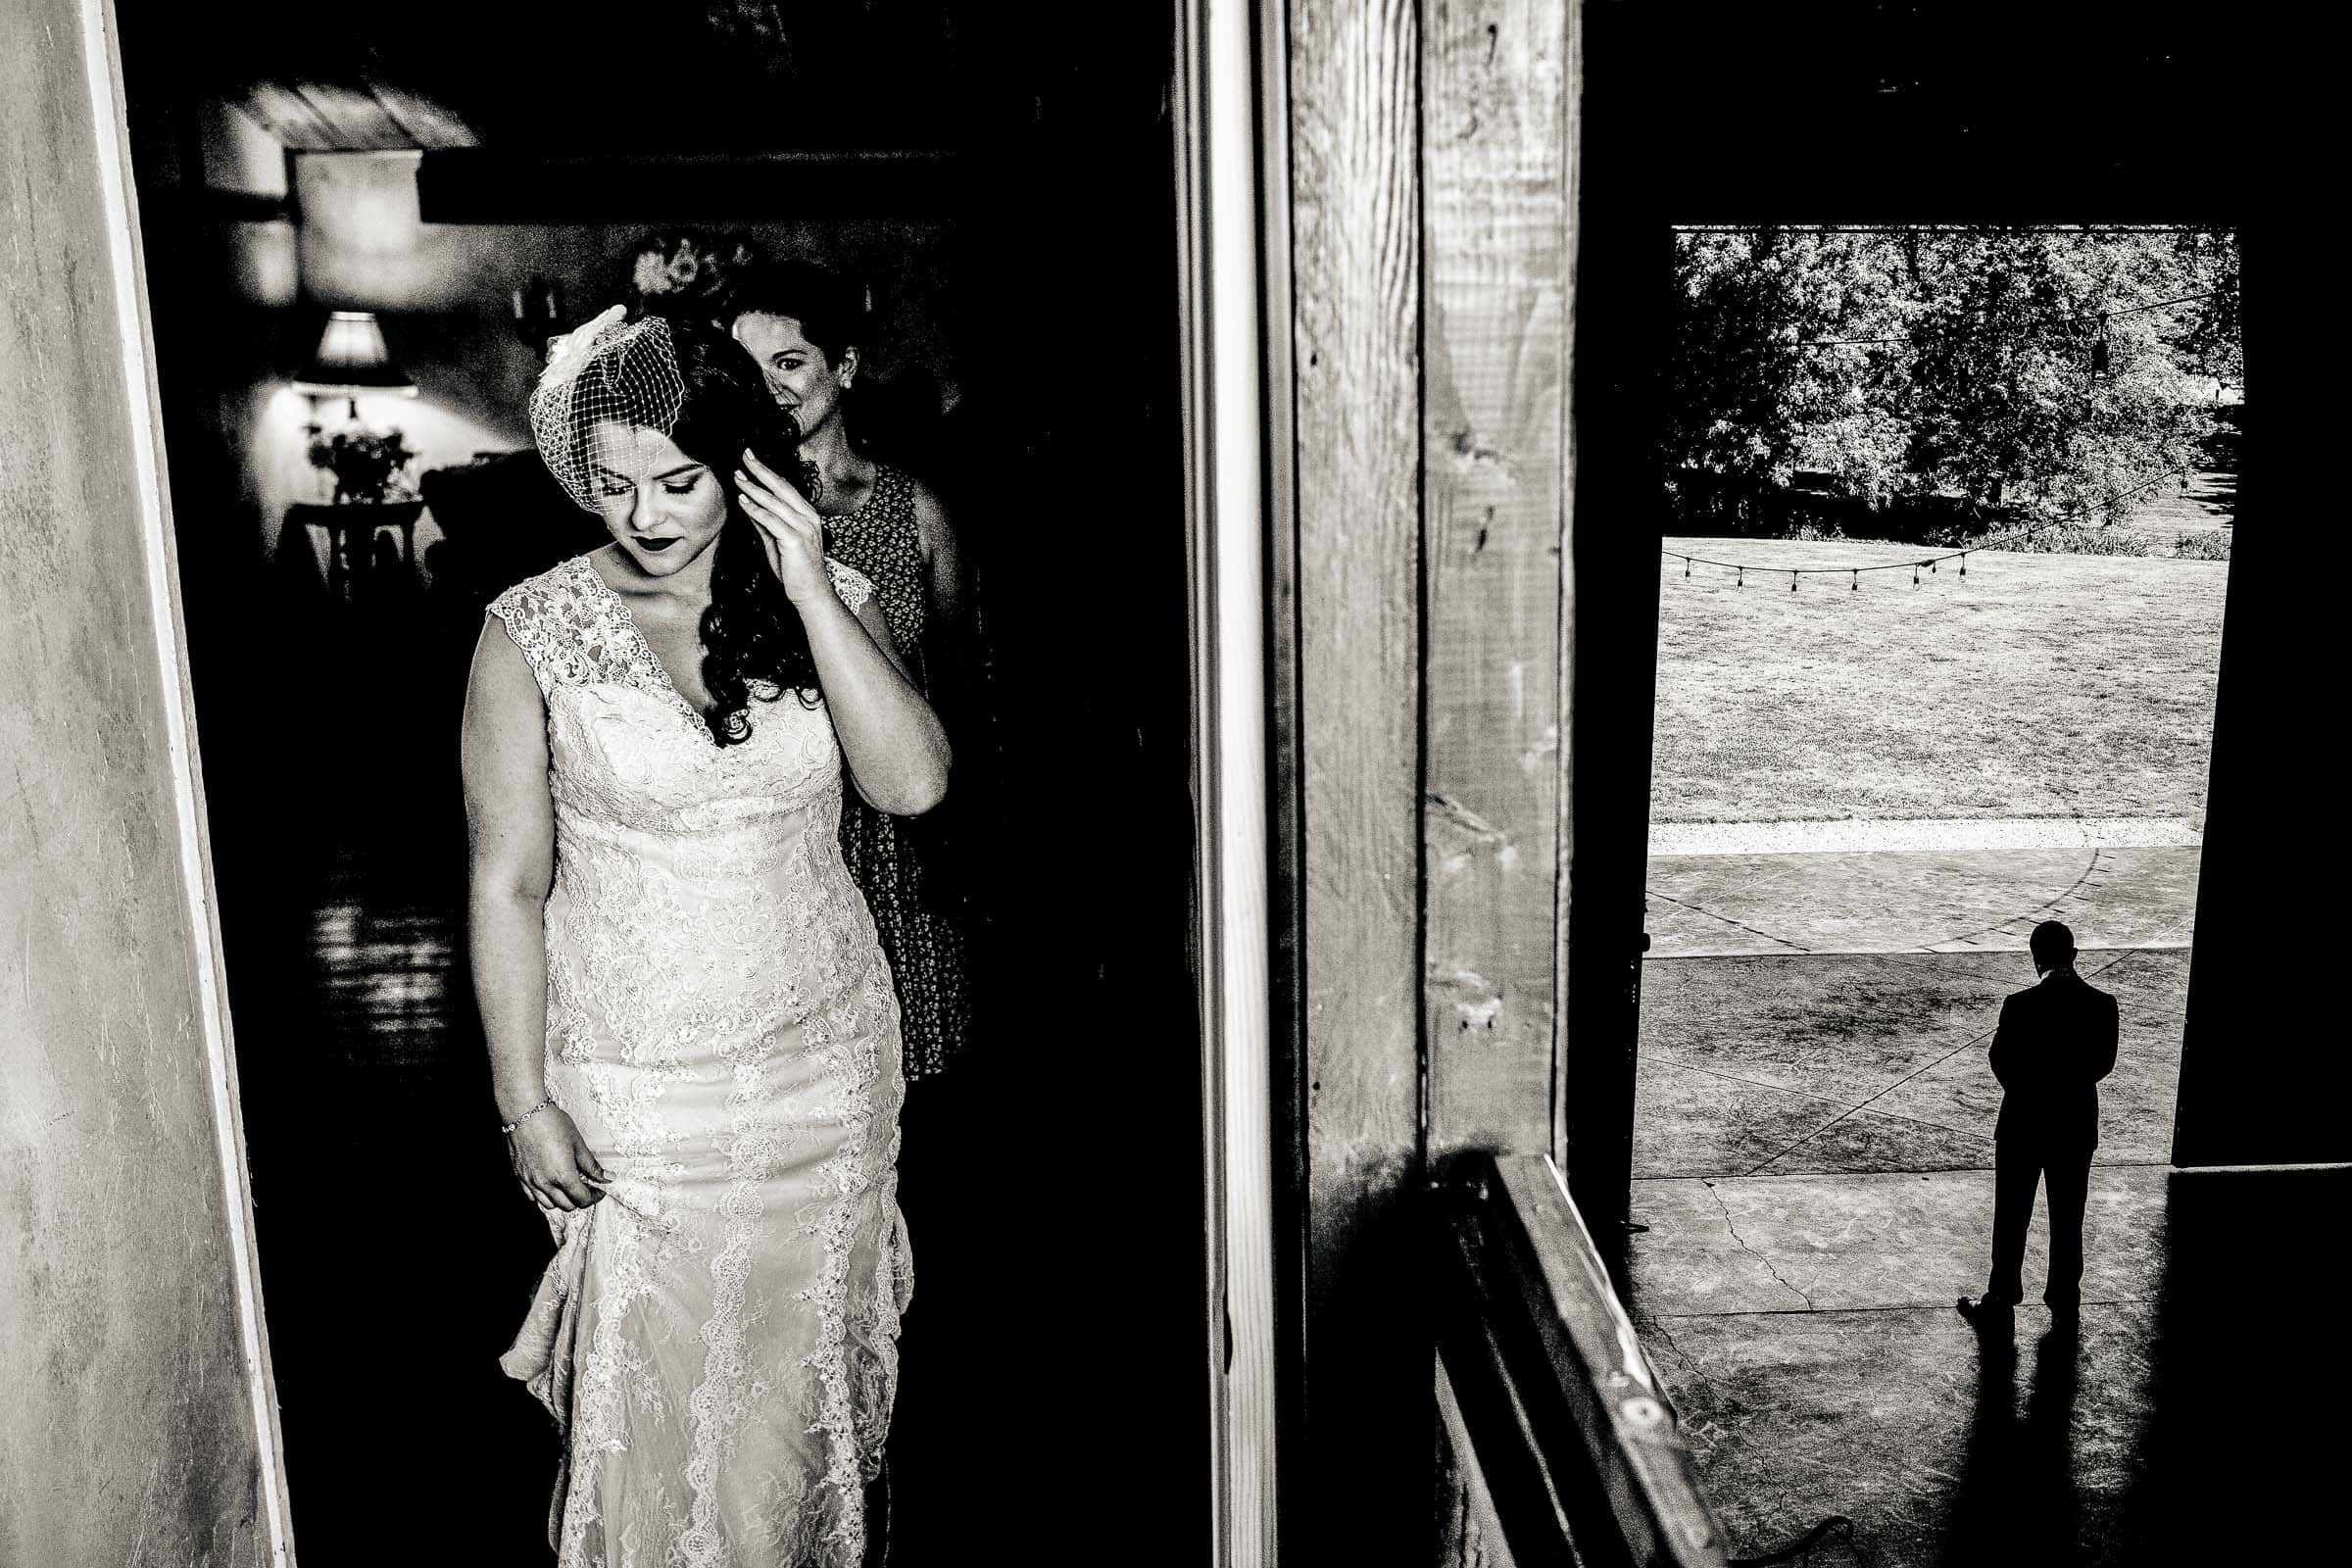 An story telling photo of a bride walking out to see her groom moments before their Postlewait's Country wedding located in the heart of the Willamette Valley between Portland and Salem near Aurora, Oregon